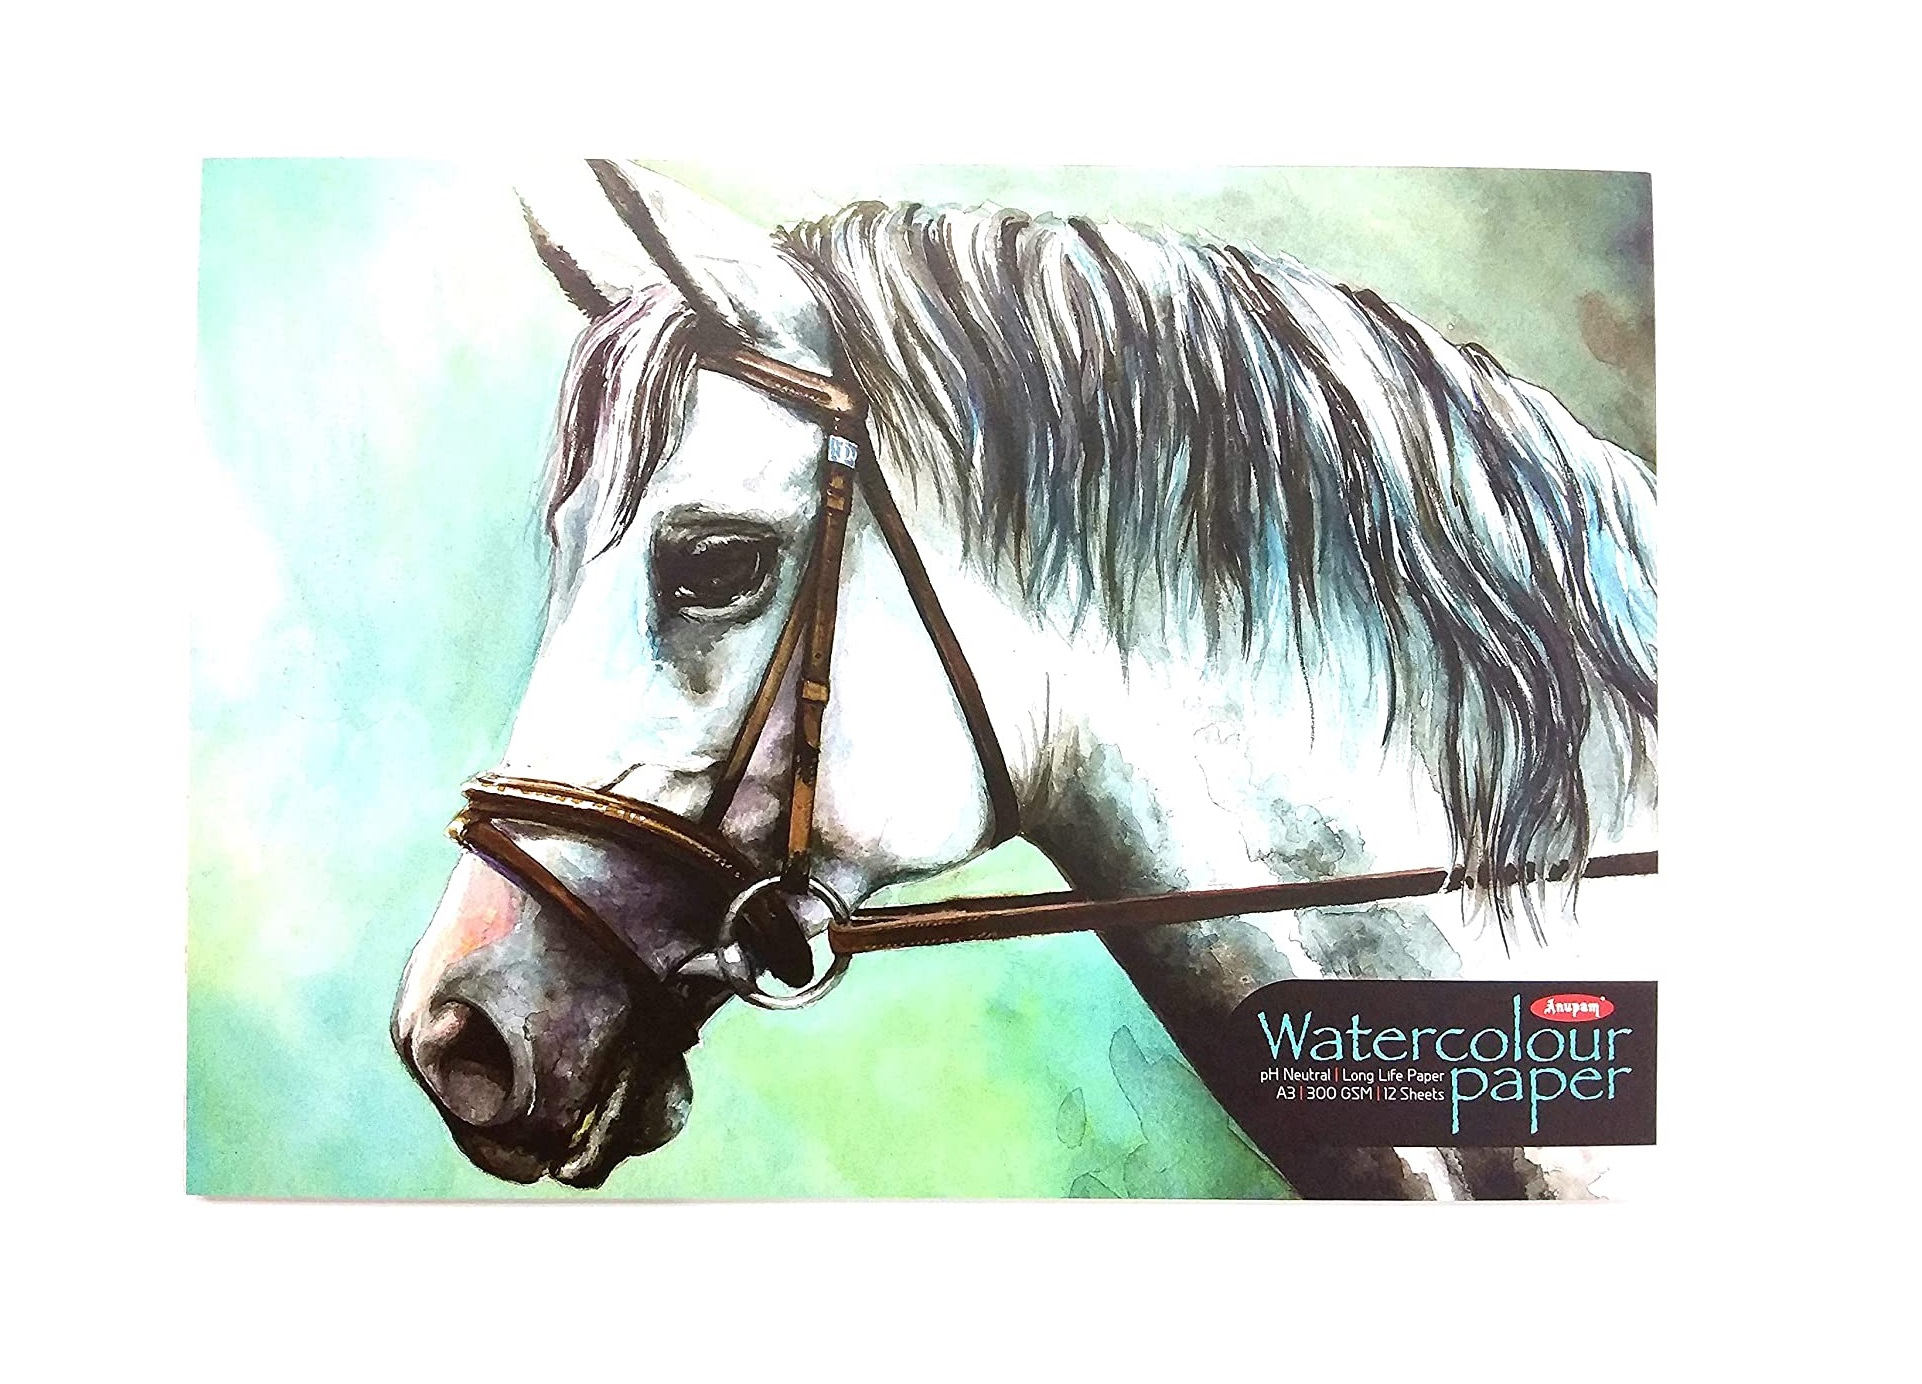 Anupam Watercolour Paper pad A3 Size with 300 GSM Paper (12 Sheets)